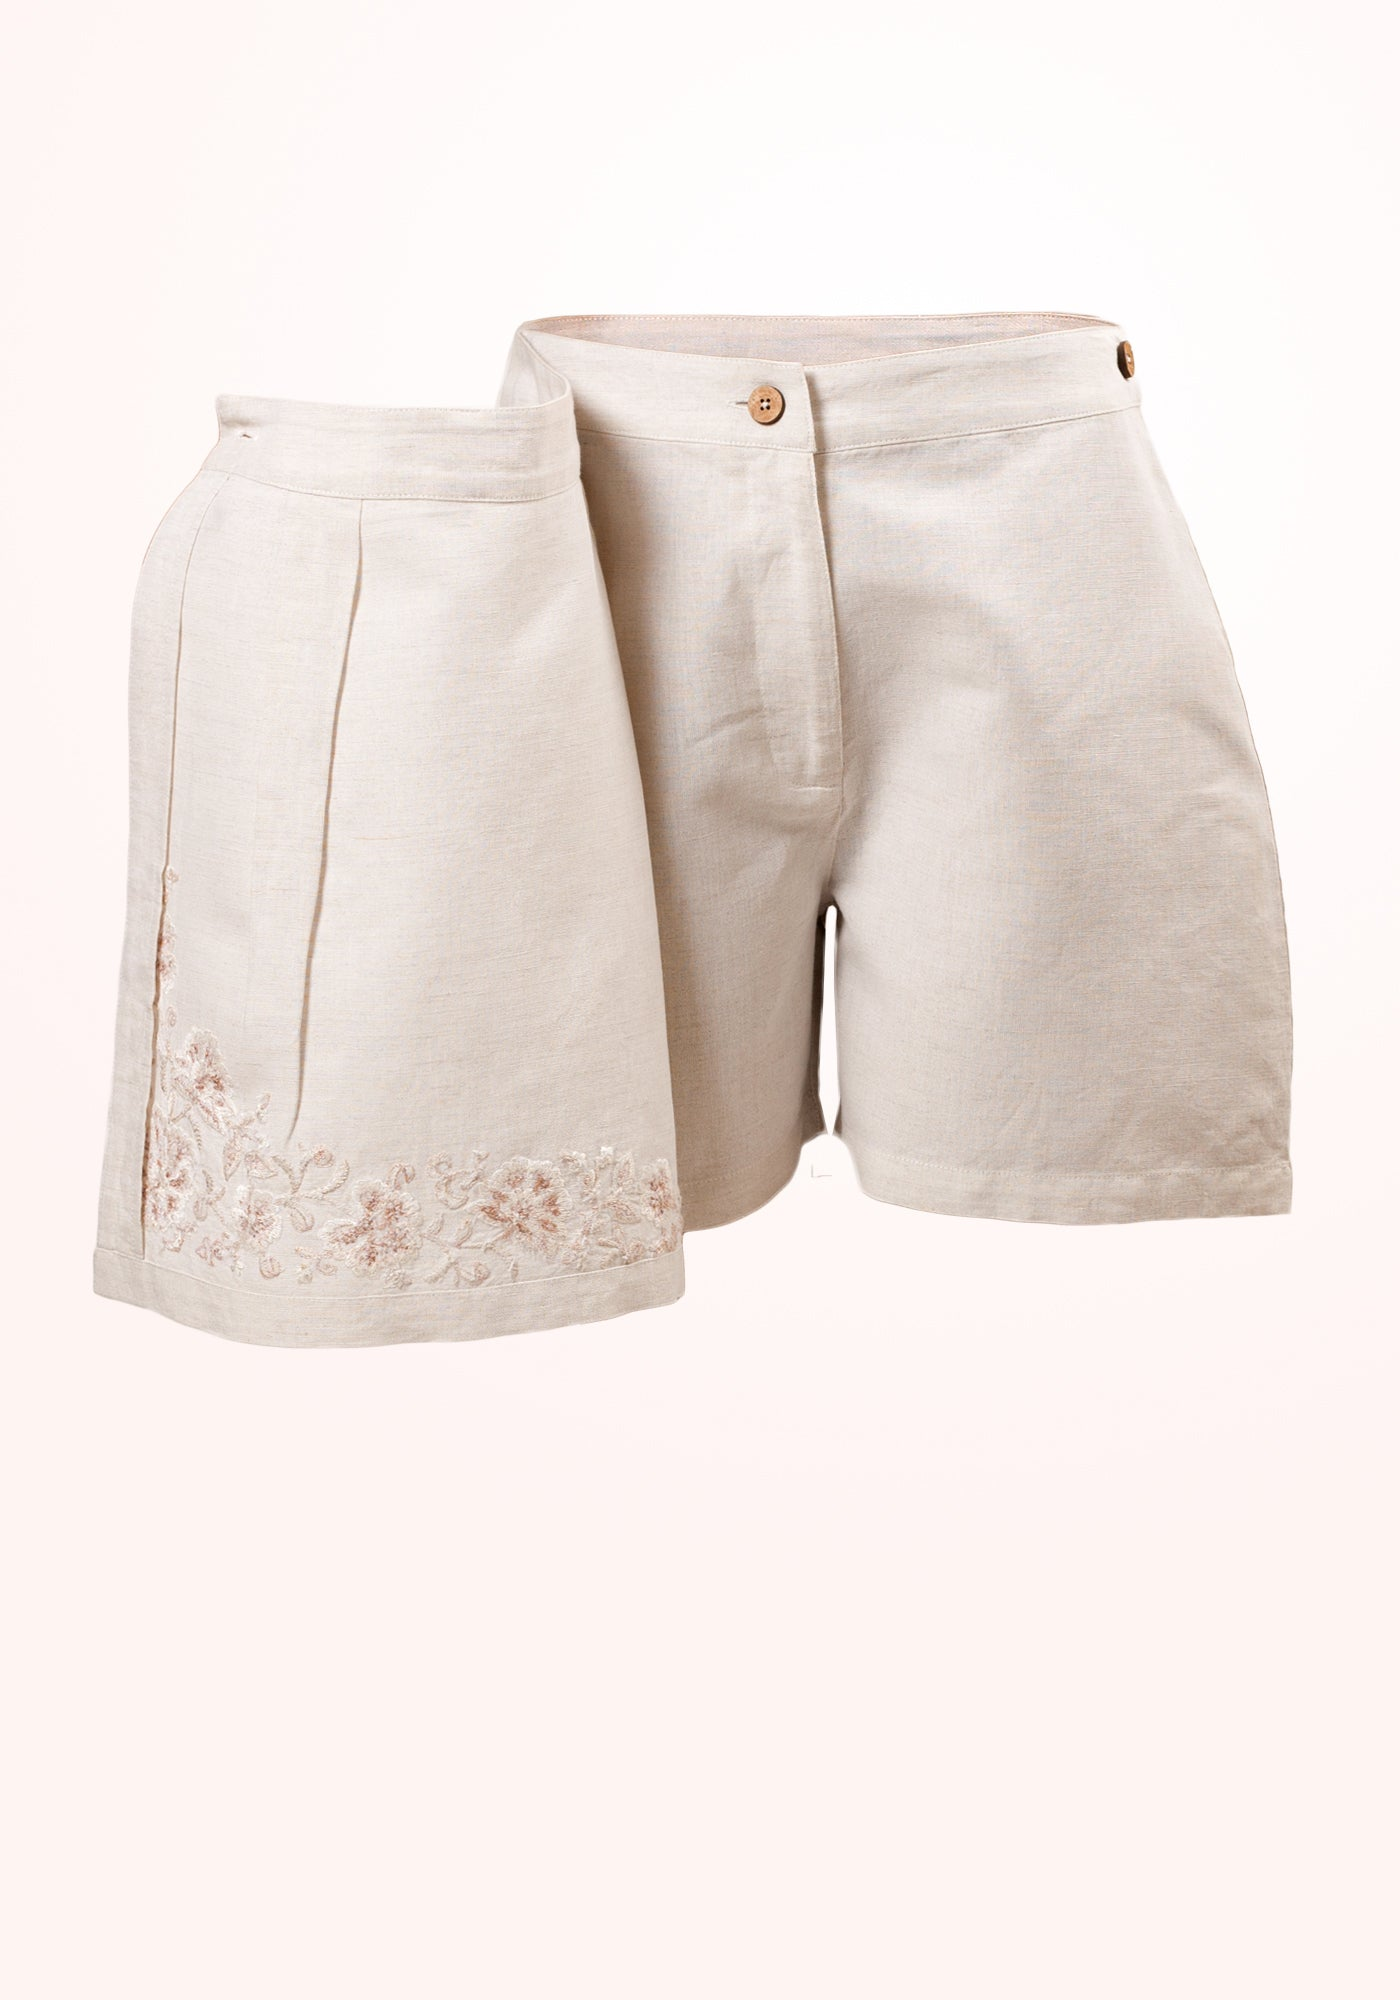 Frappe Girls Skirt in Off White Embroidered Linen - MINC ecofashion